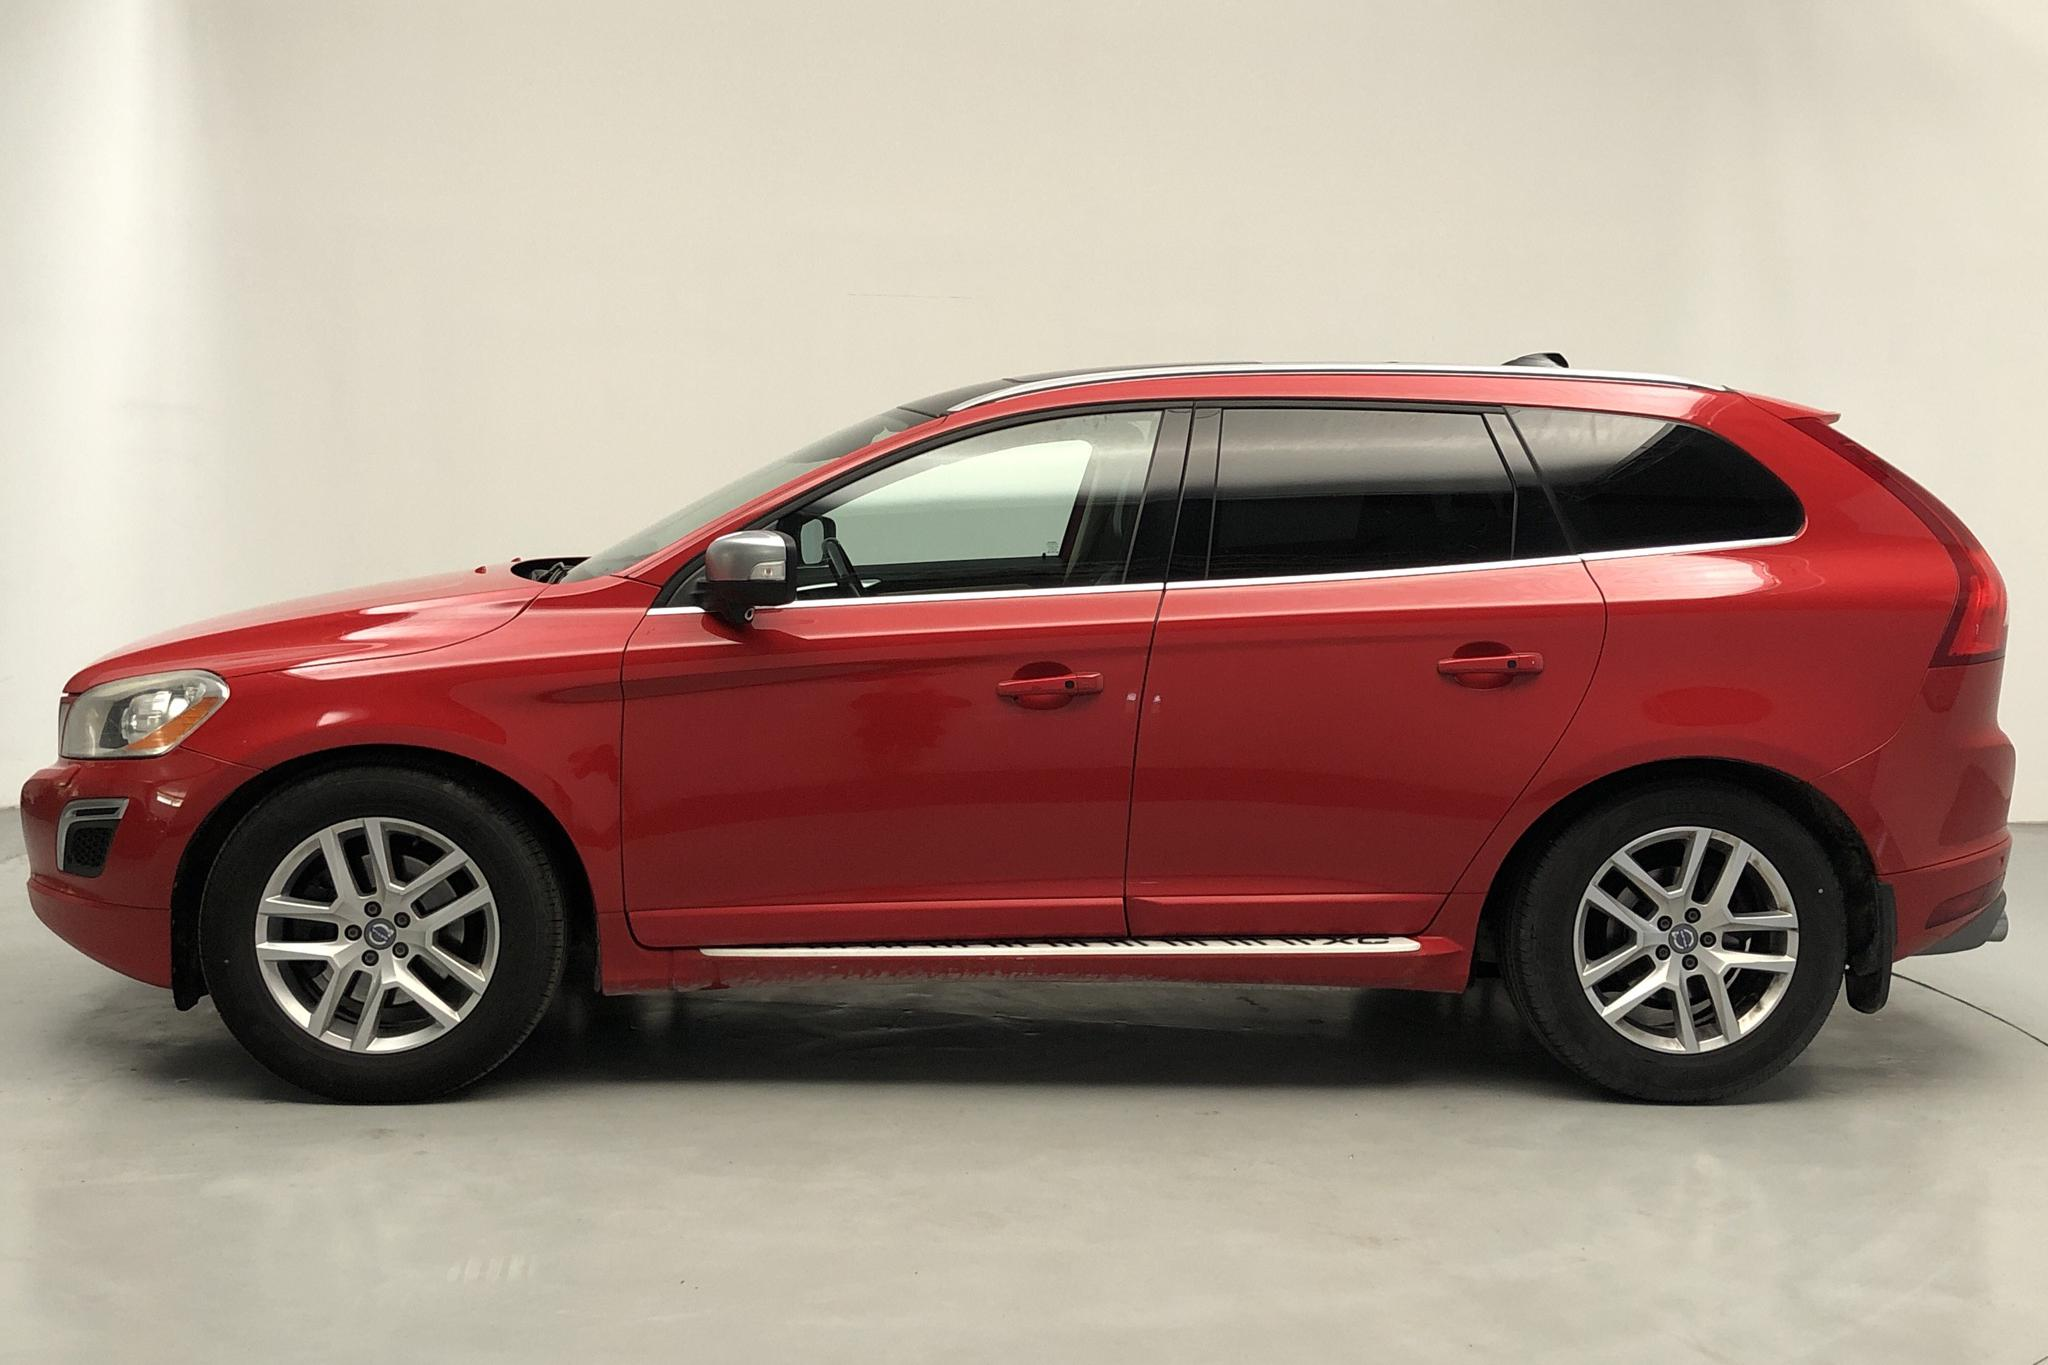 Volvo XC60 D5 AWD (205hk) - 399 320 km - Automatic - red - 2010